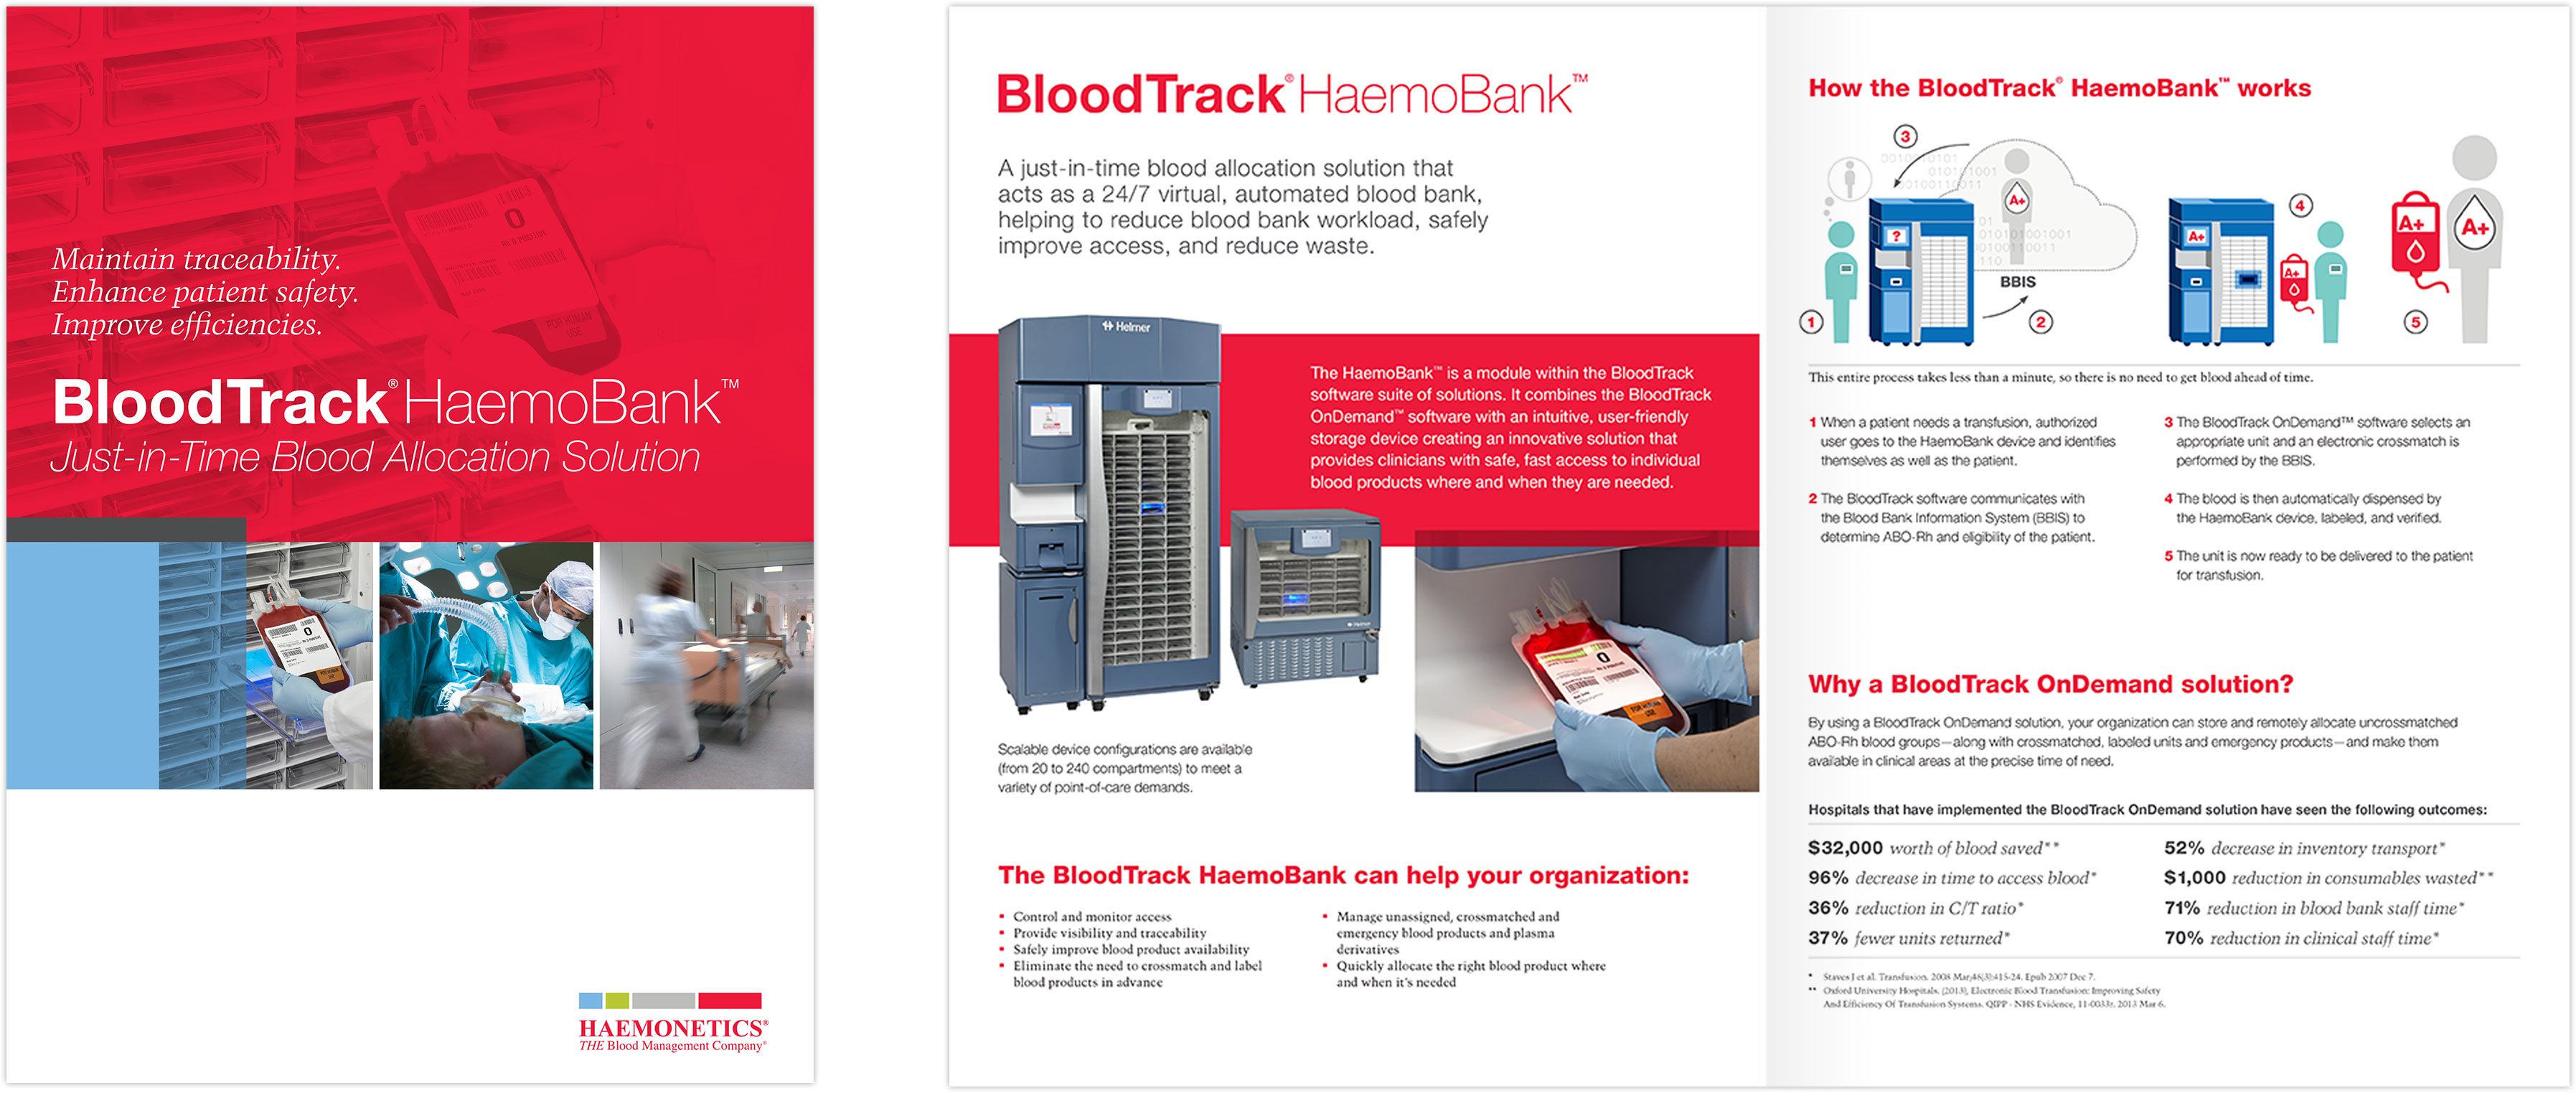 BloodTrack HaemoBank brochure spread